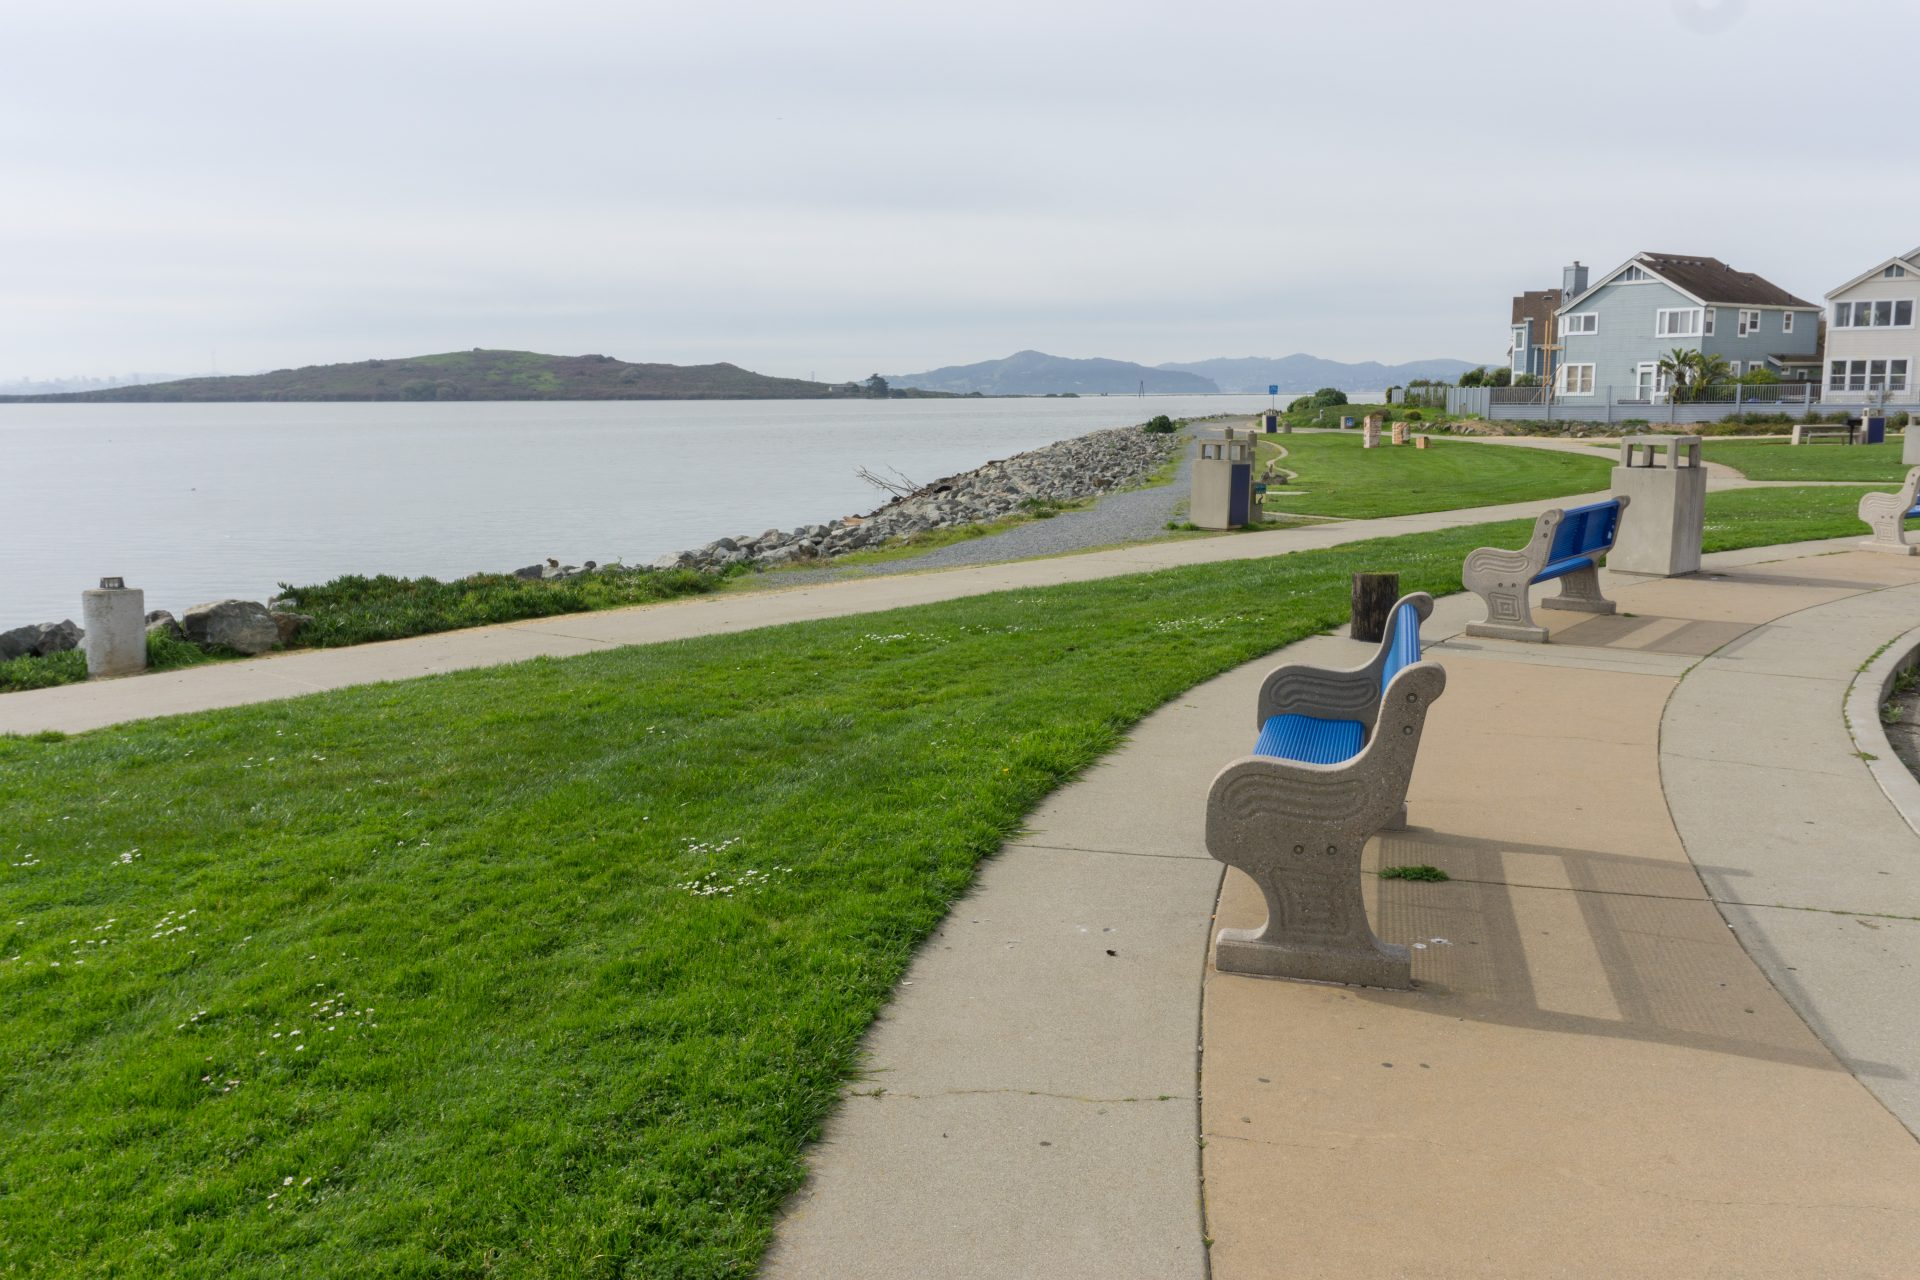 Benches on right, overlooking green grass, paved paths, and the bay